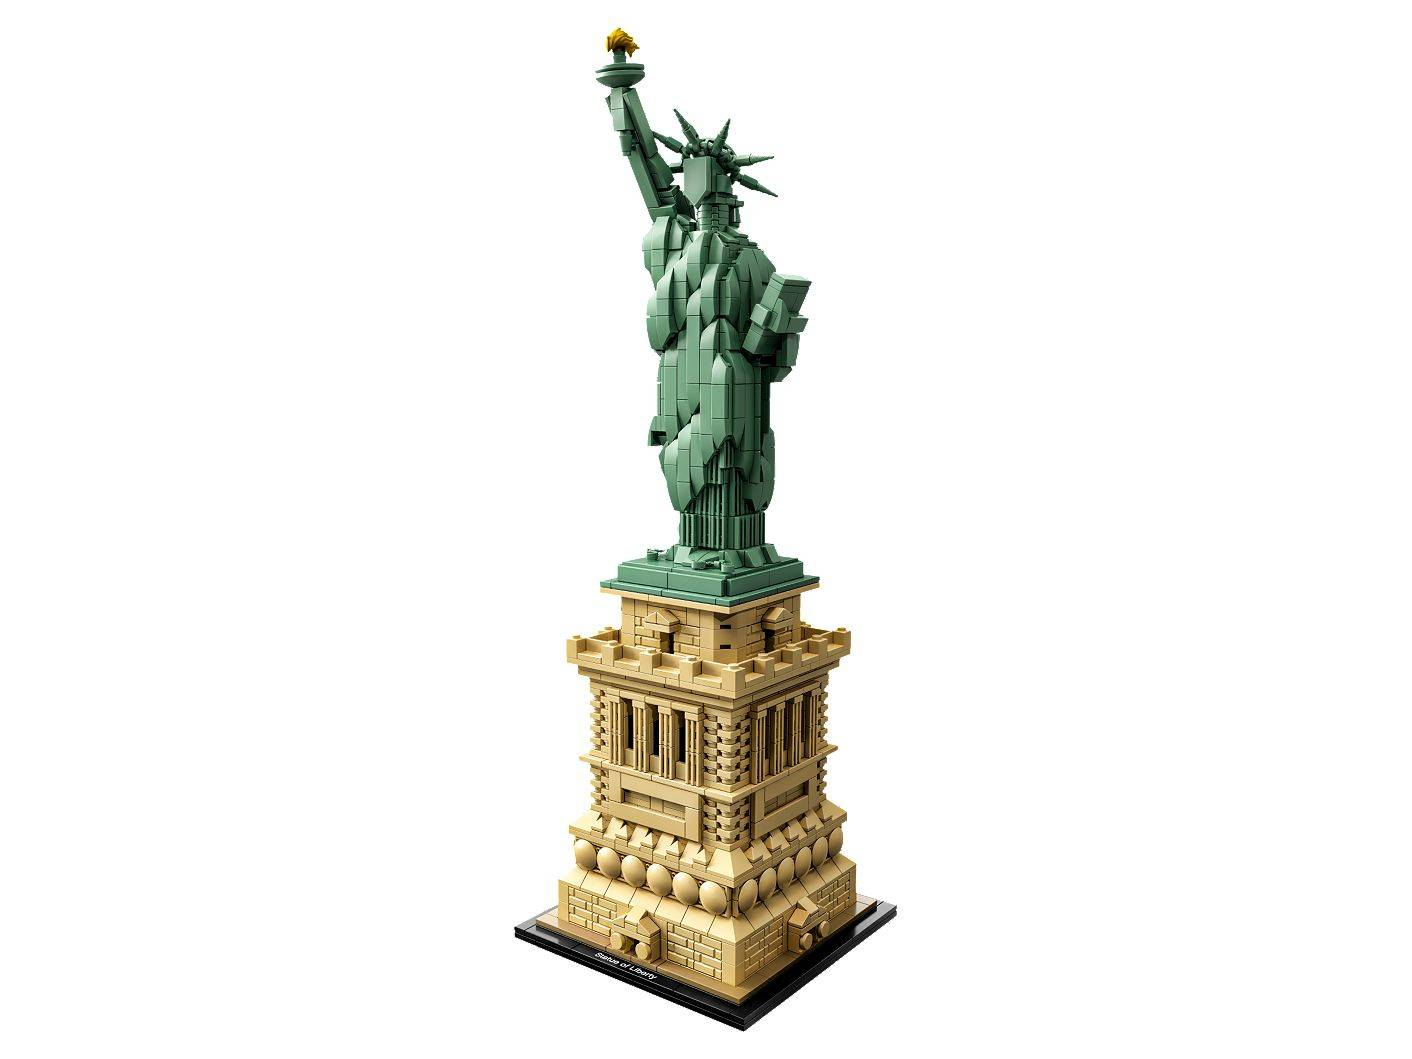 LEGO 3450 Statue of Liberty Sculpture